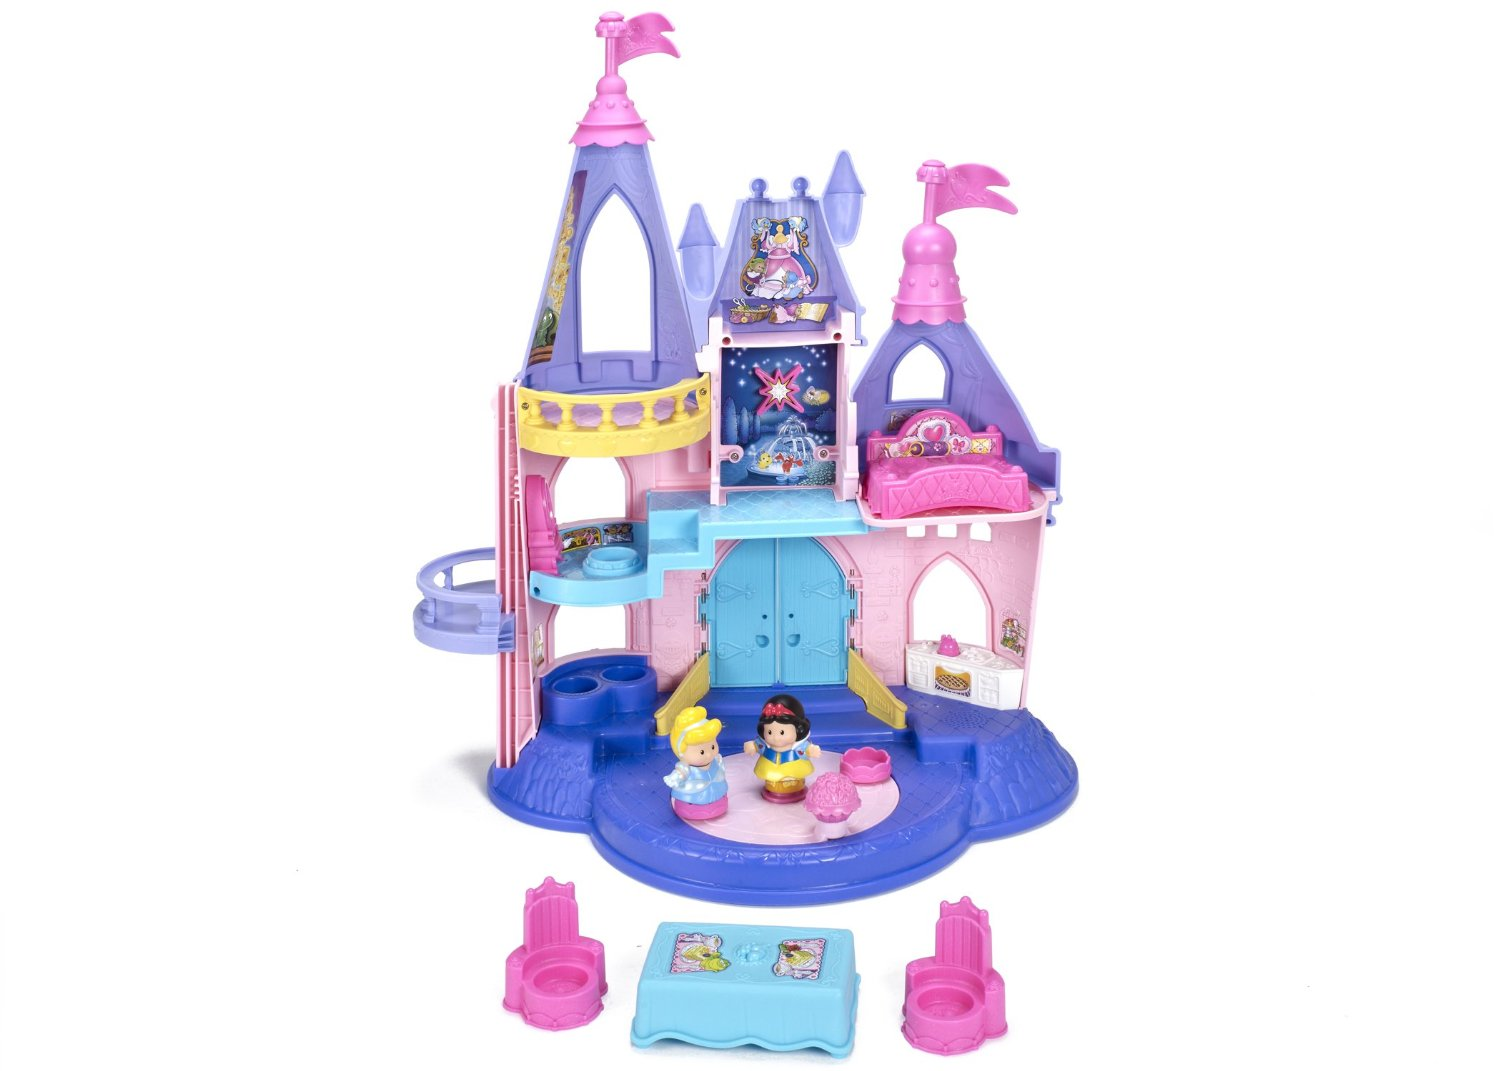 0097: Little People Princess Songs Palace